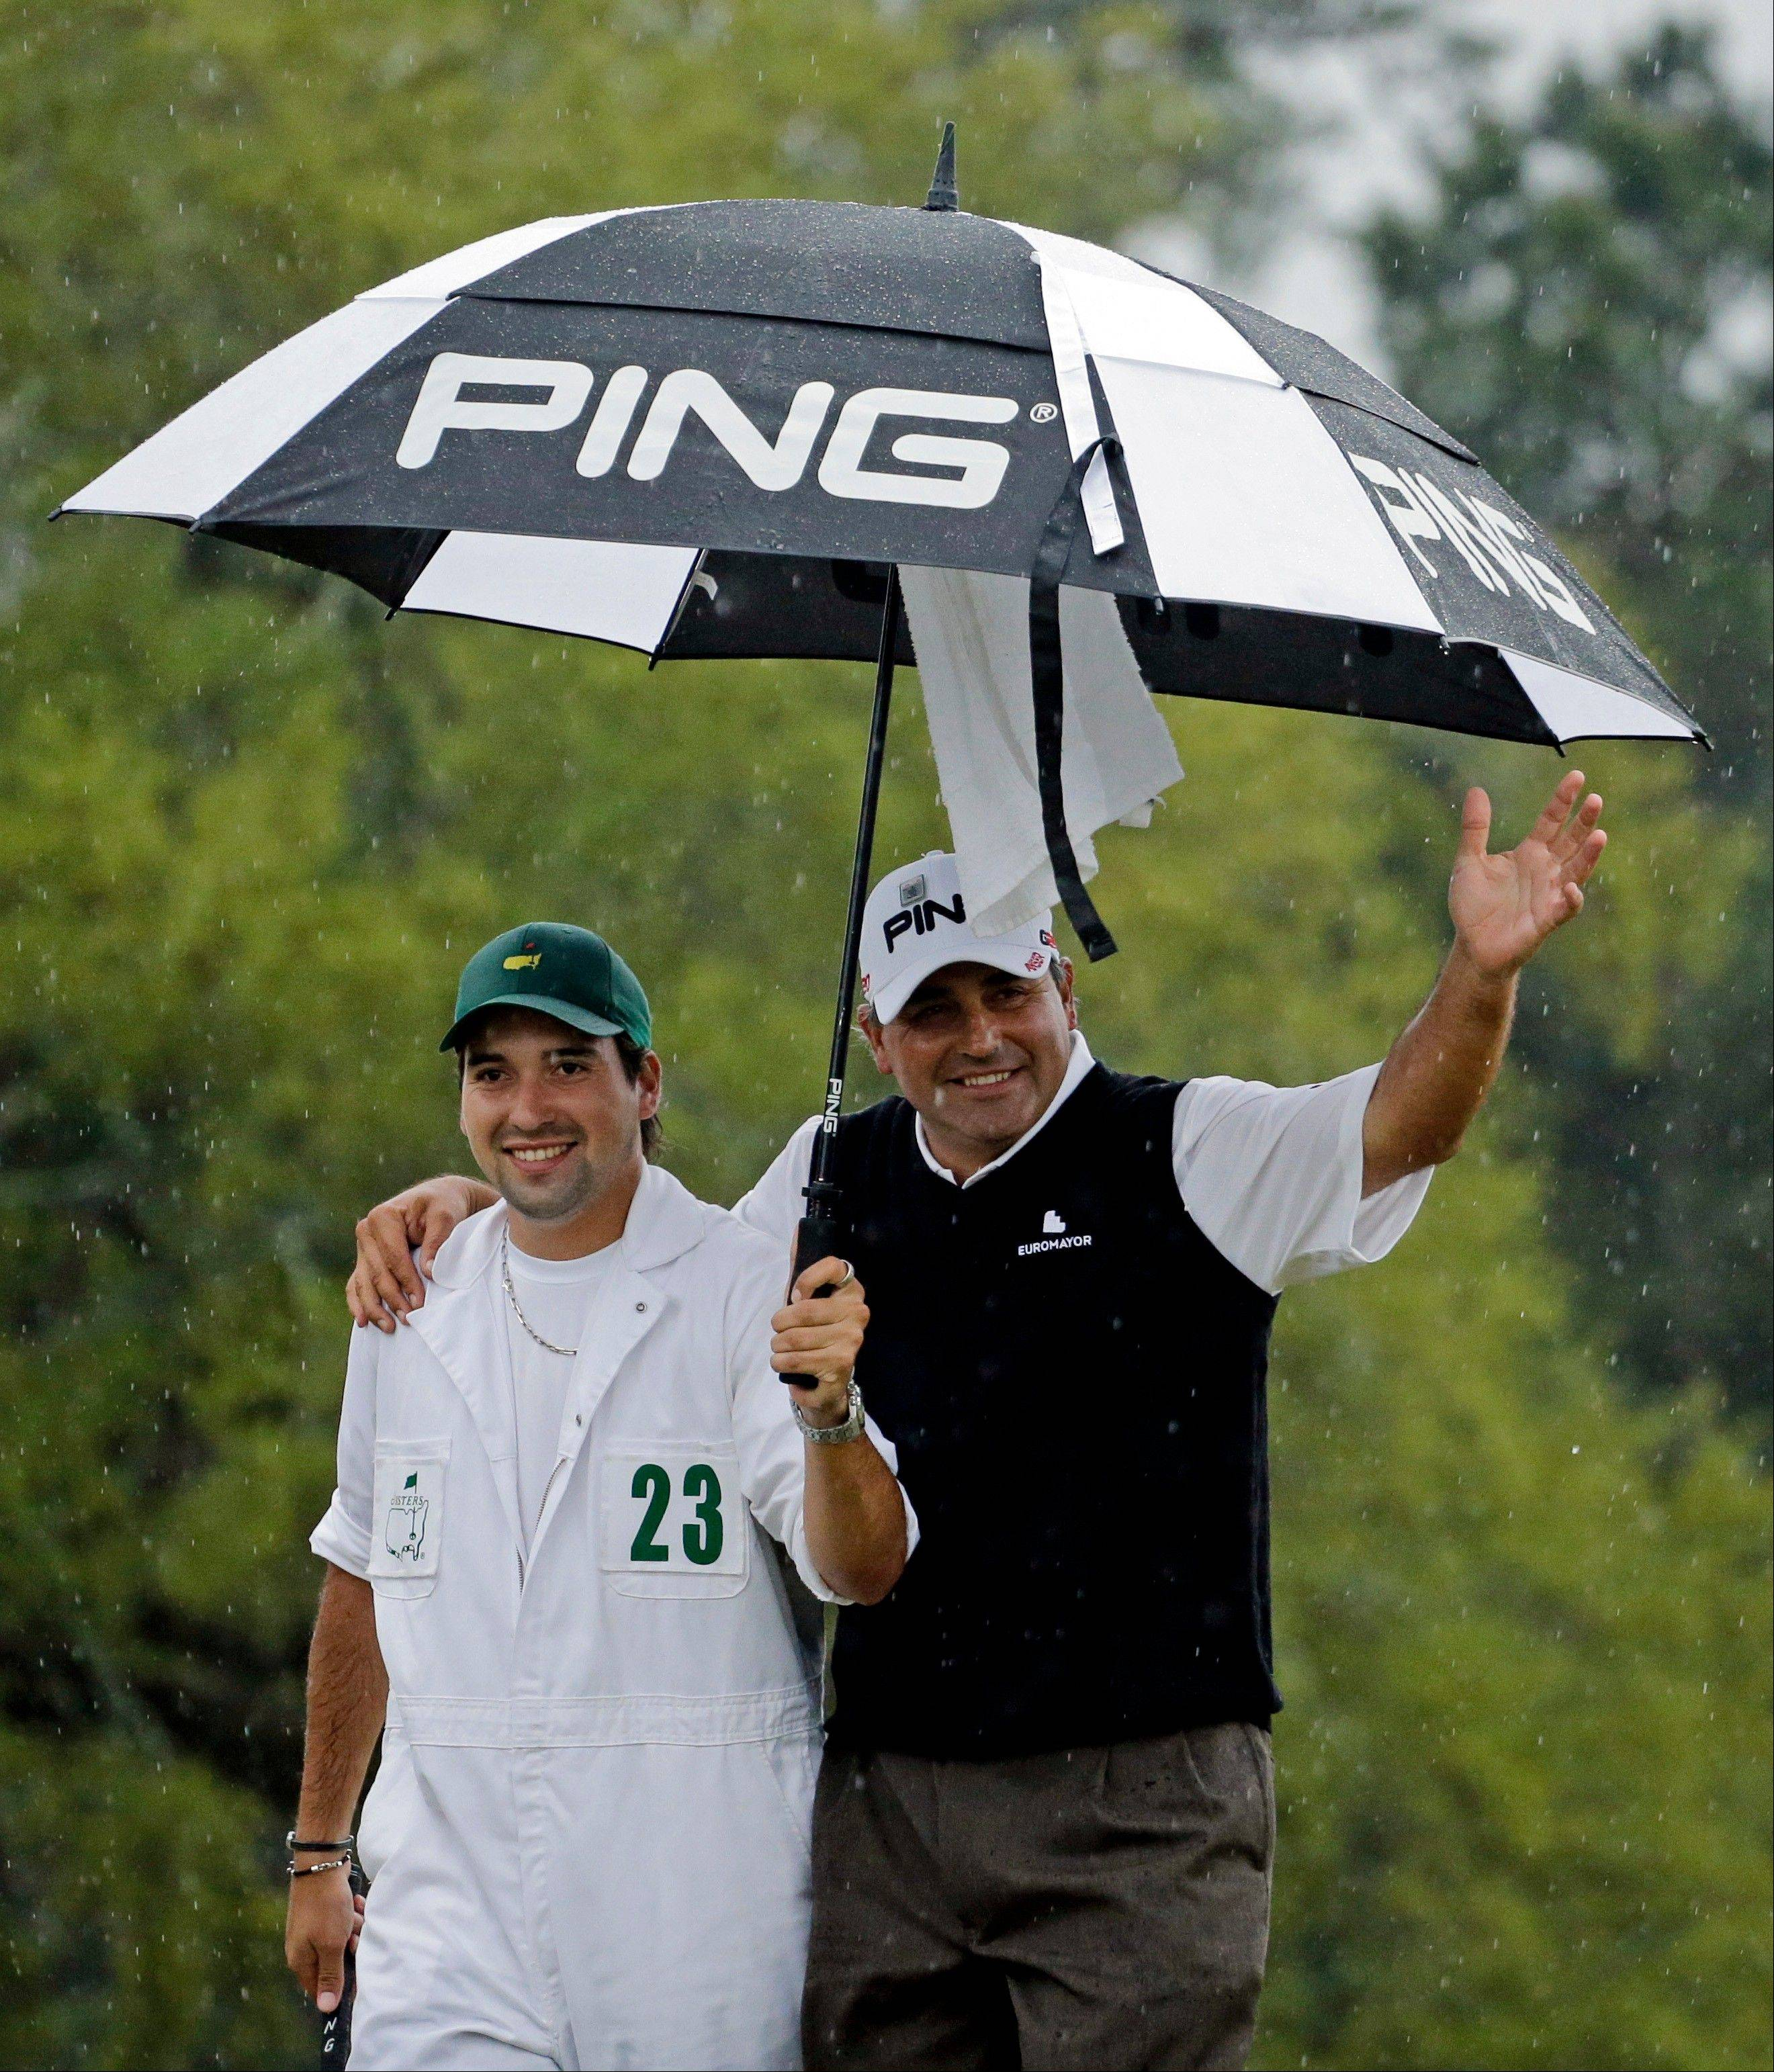 Angel Cabrera, of Argentina, waves with his caddie son after birdie putt on the 18th hole during the fourth round of the Masters golf tournament Sunday, April 14, 2013, in Augusta, Ga.